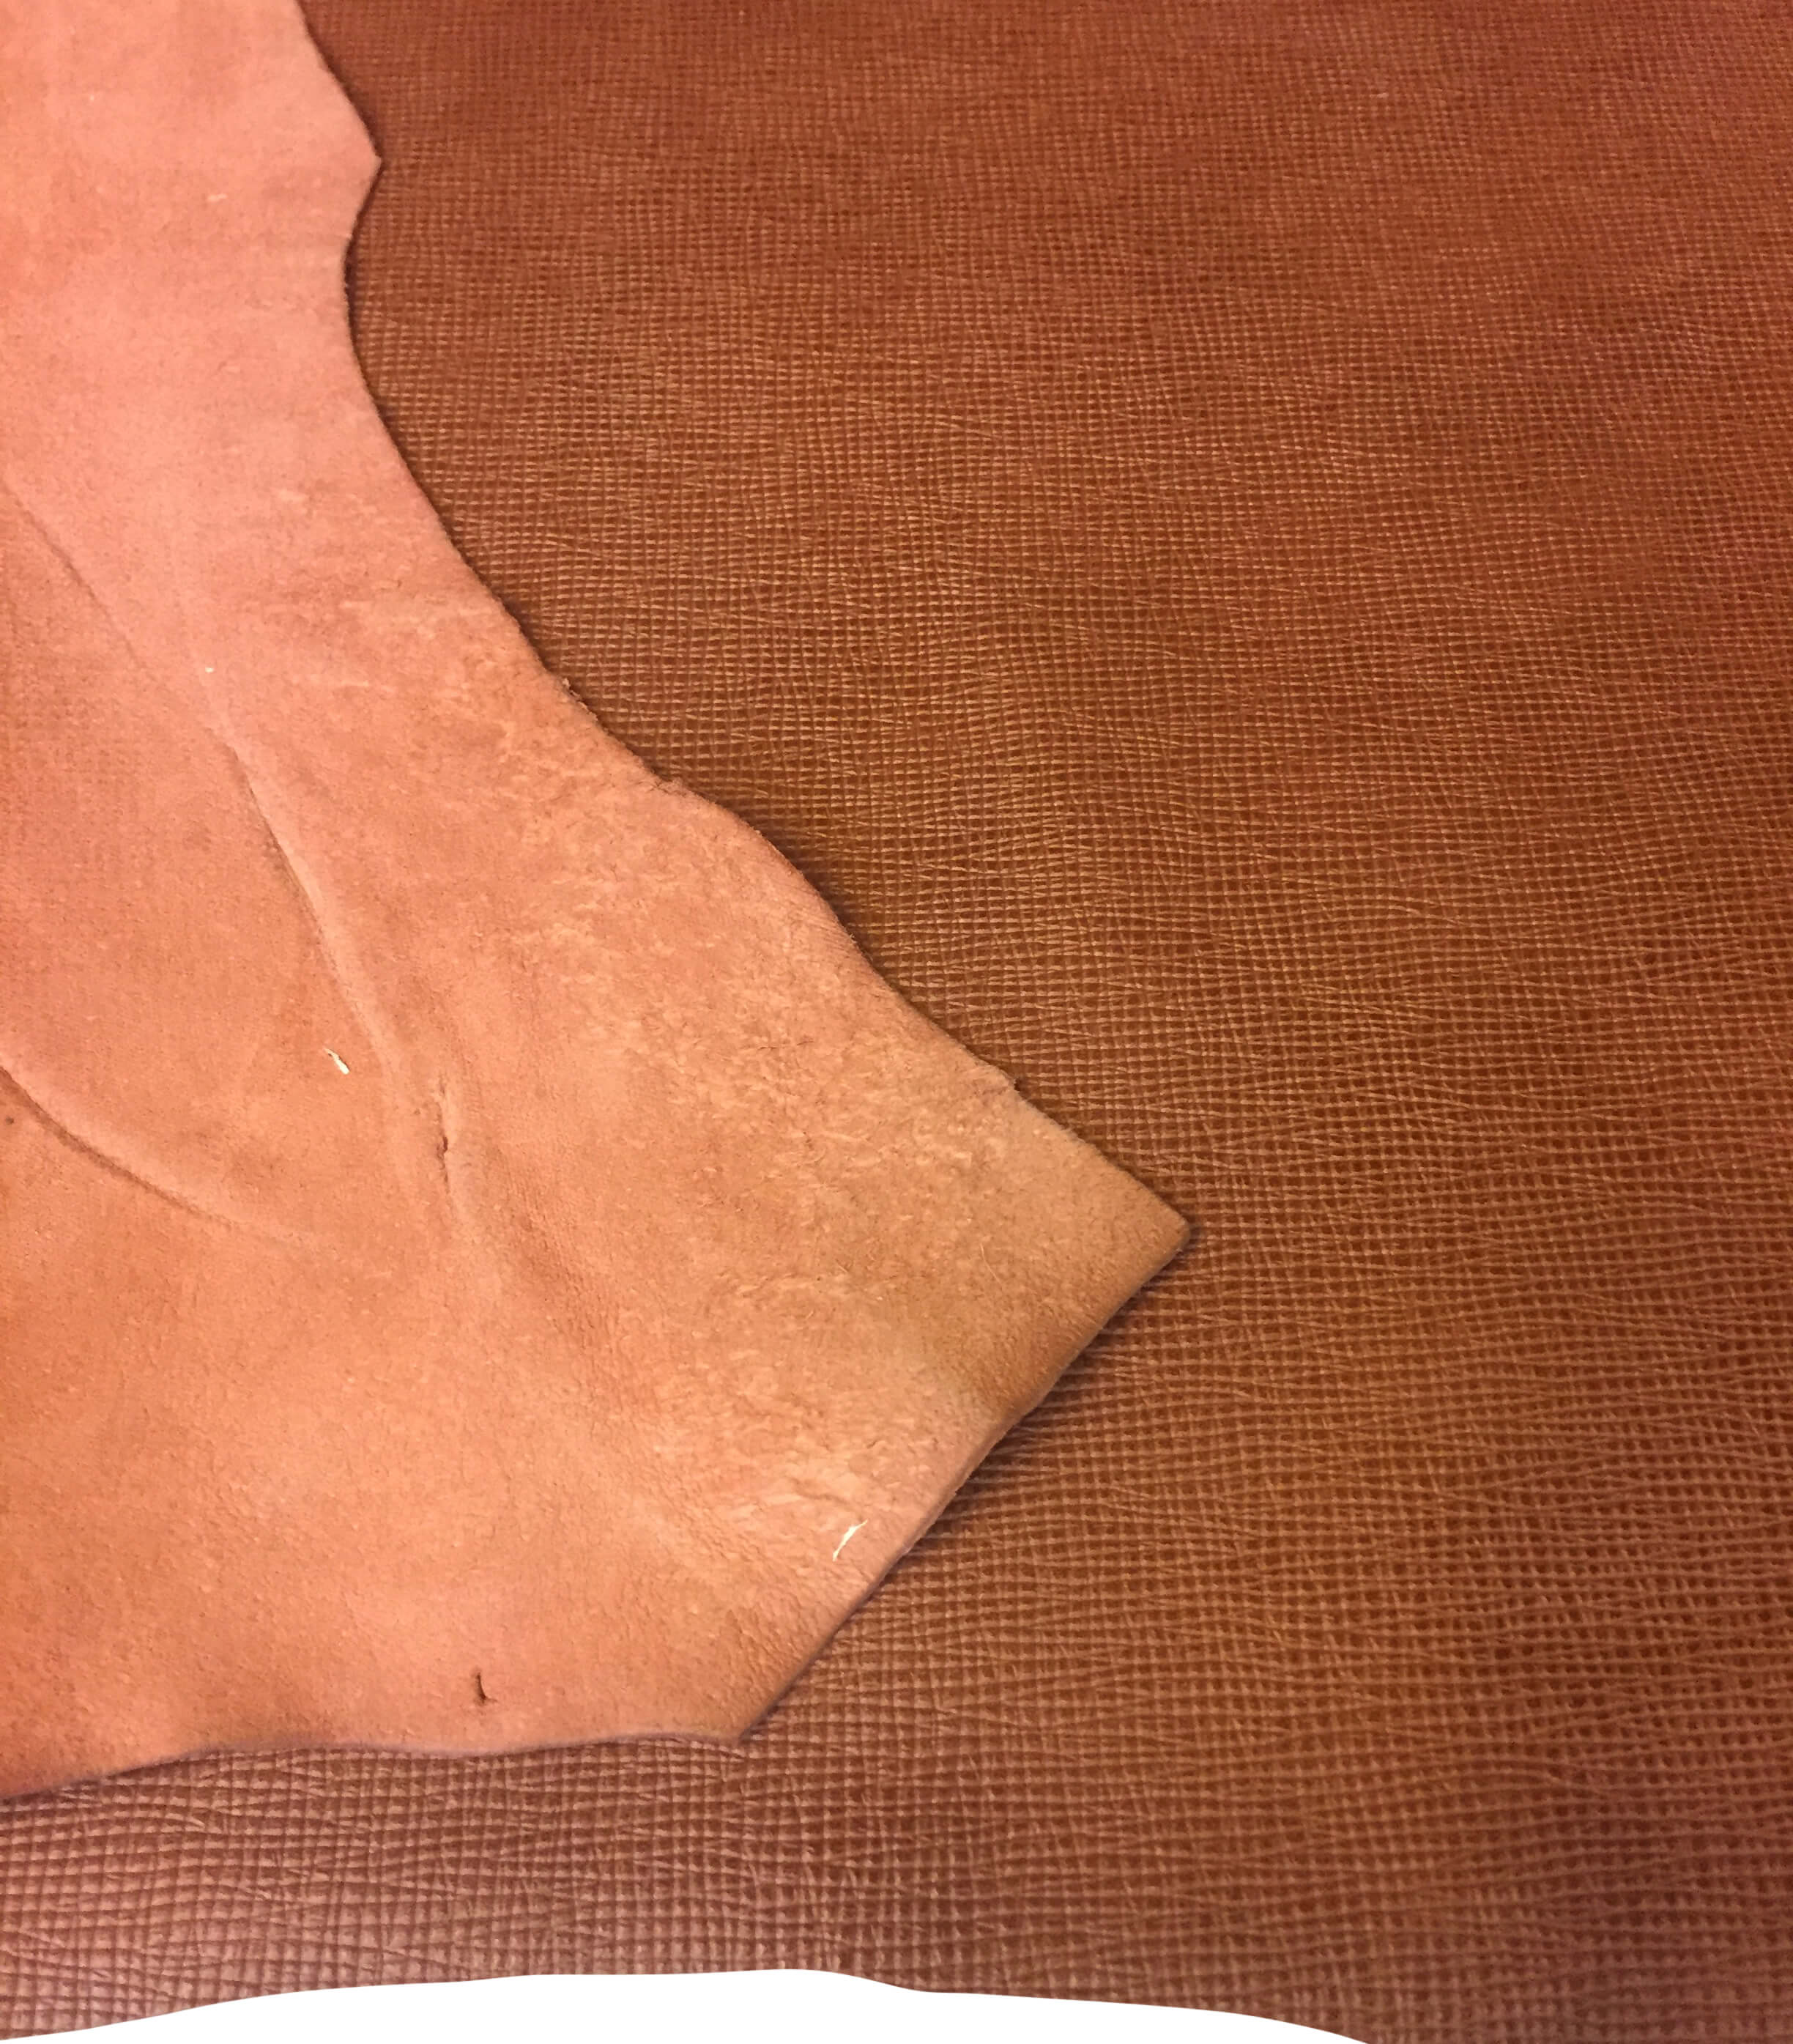 Sale Brown Cognac Genuine Leather Goatskin Hides with Textured Finish Great for Craft Projects